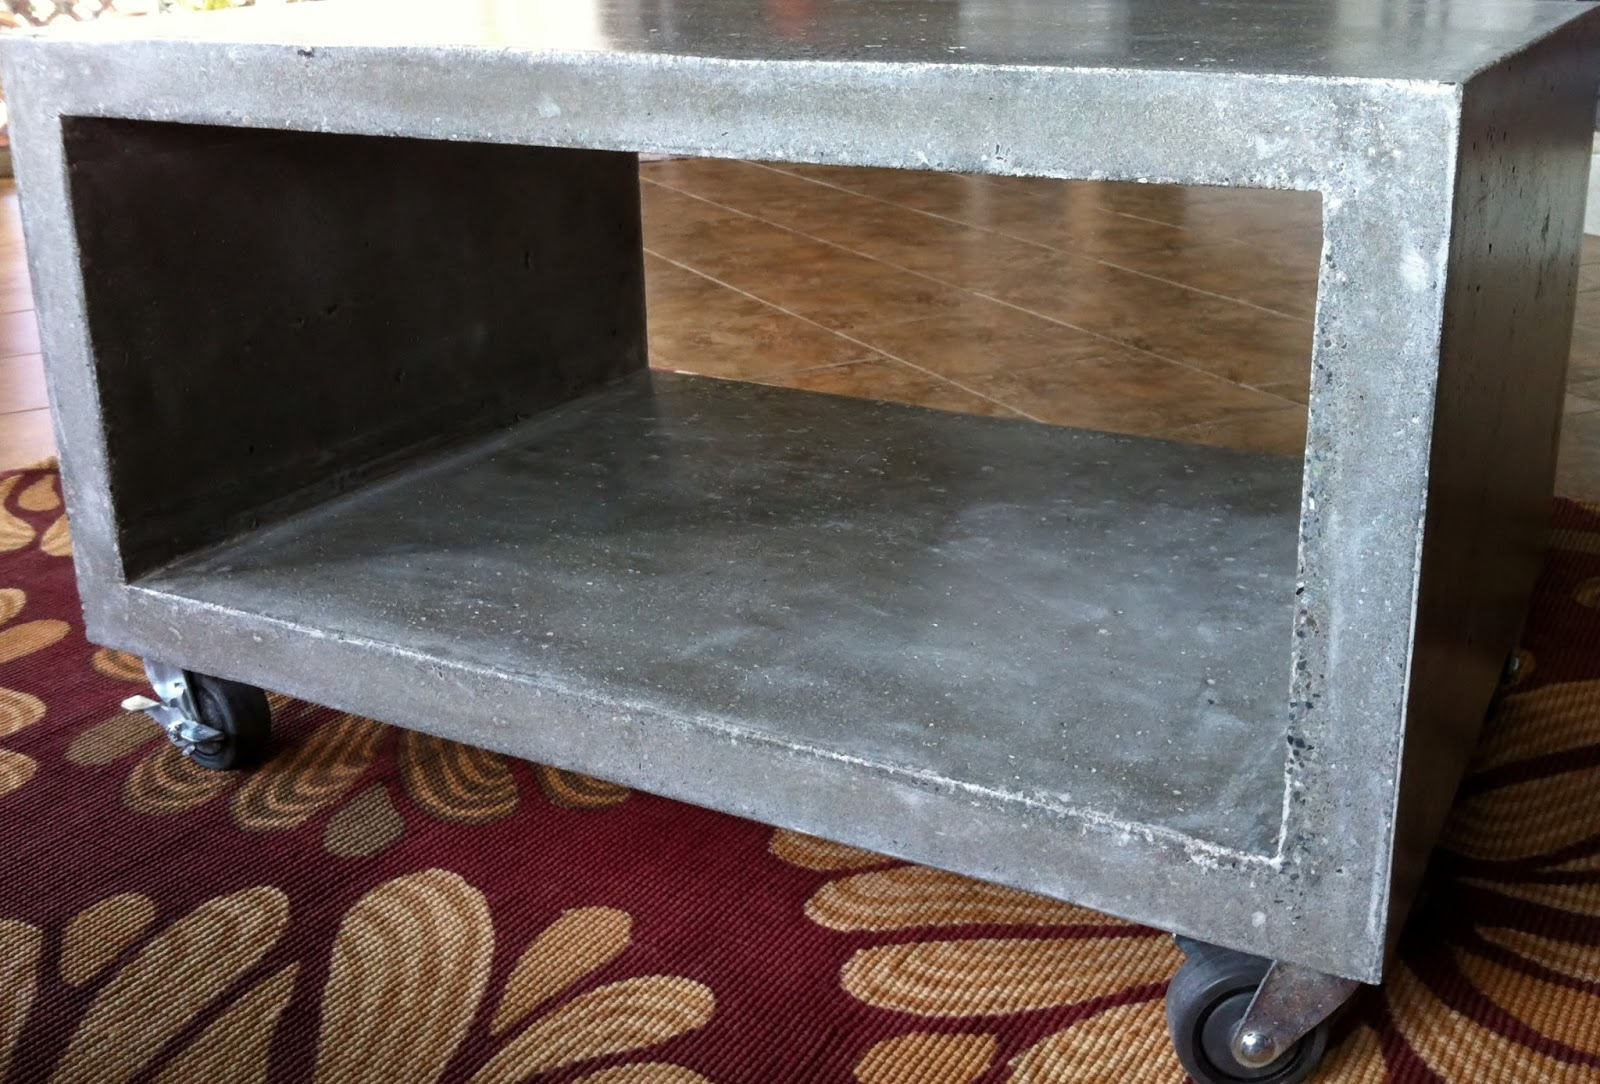 Modern Rectangular Coffee Table - Rectangular concrete coffee table